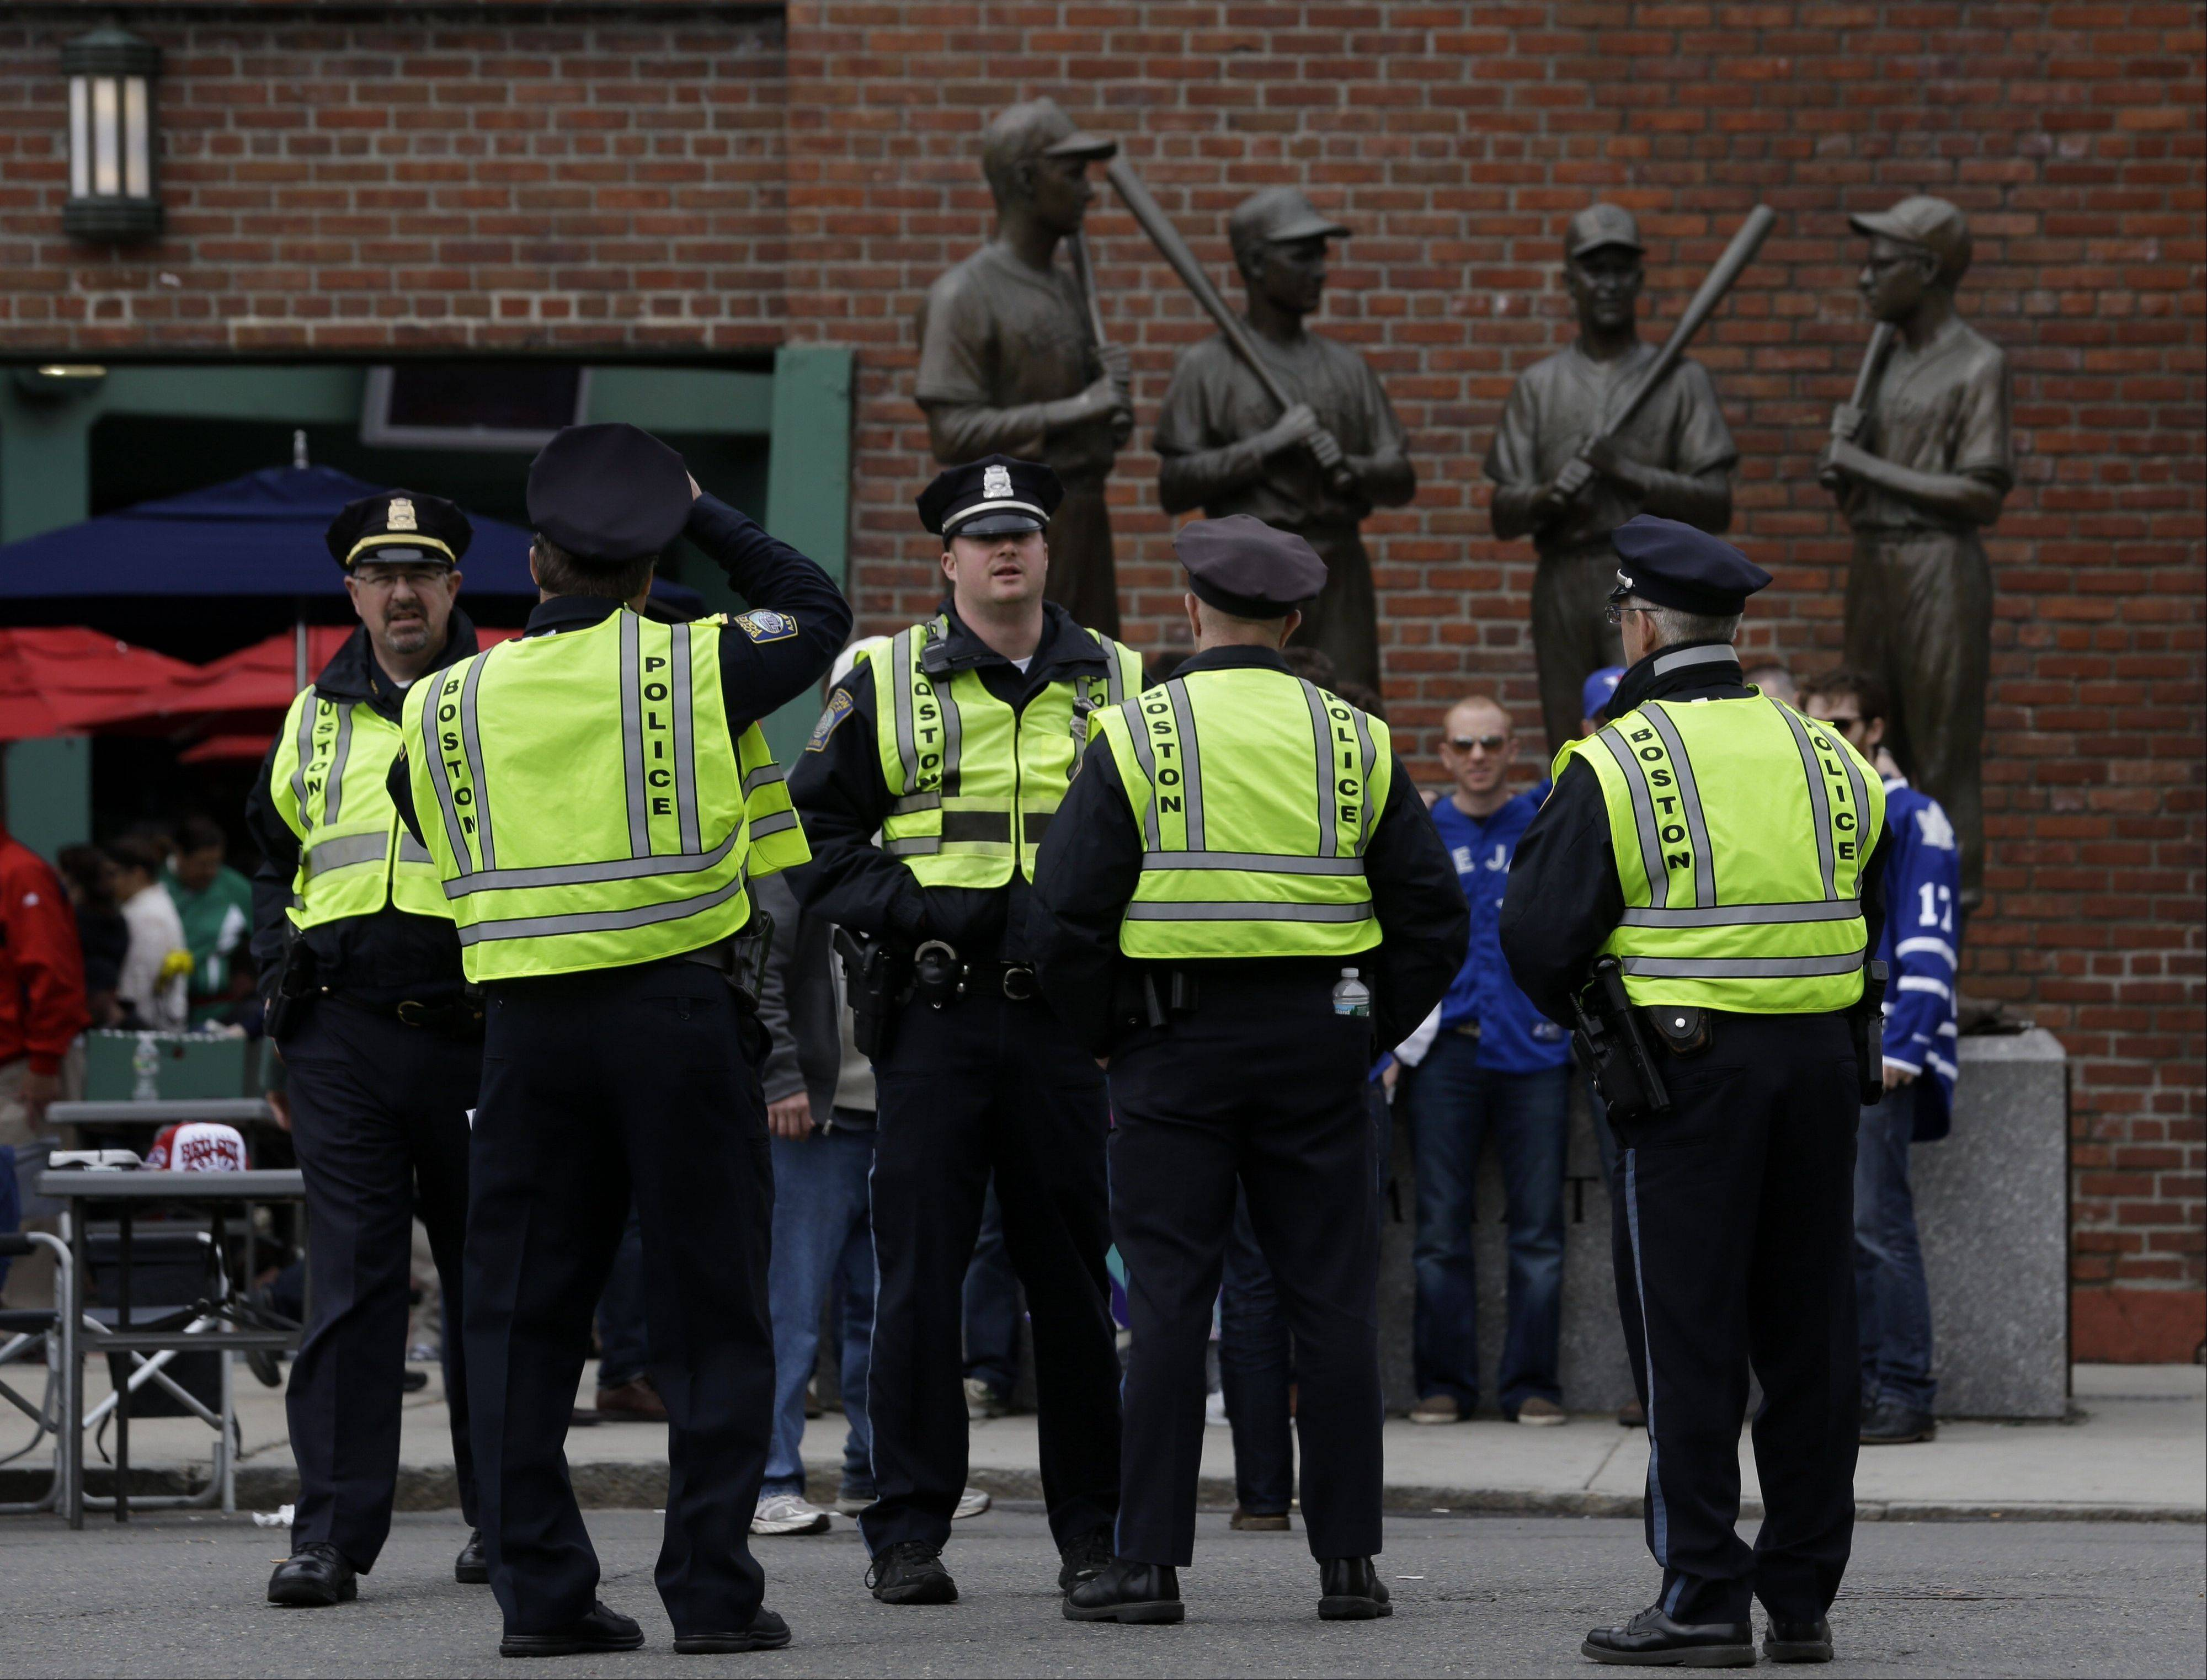 Police officers stand near statues of fromer Boston Red Sox greats, from left, Ted Williams, Bobby Doerr, Johnny Pesky and Dom DiMaggio during a baseball game between the Kansas City Royals and the Boston Red Sox, the first game held in the city following the Boston Marathon explosions, Saturday, April 20, 2013, in Boston. Police captured Dzhokhar Tsarnaev, 19, the surviving Boston Marathon bombing suspect, late Friday, after a wild car chase and gun battle earlier in the day left his